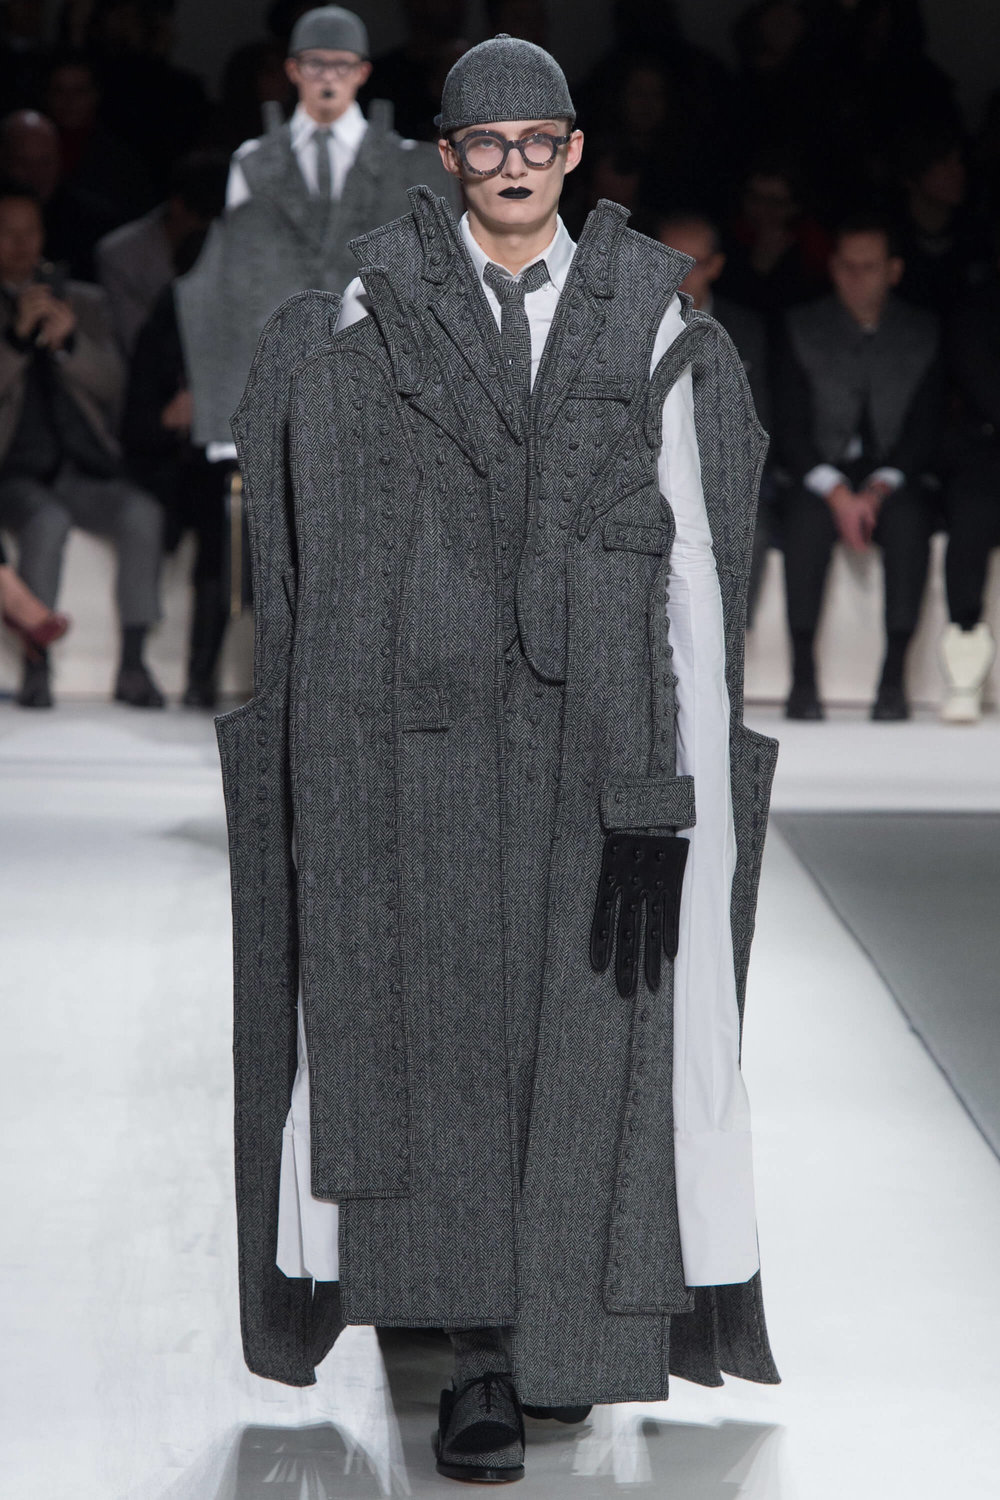 Thom-Browne-Never-Fails-to-Amaze-Thatsitmag-Thatsitmagazine-GraceBrookes-Paris-Fashion-week2.jpg